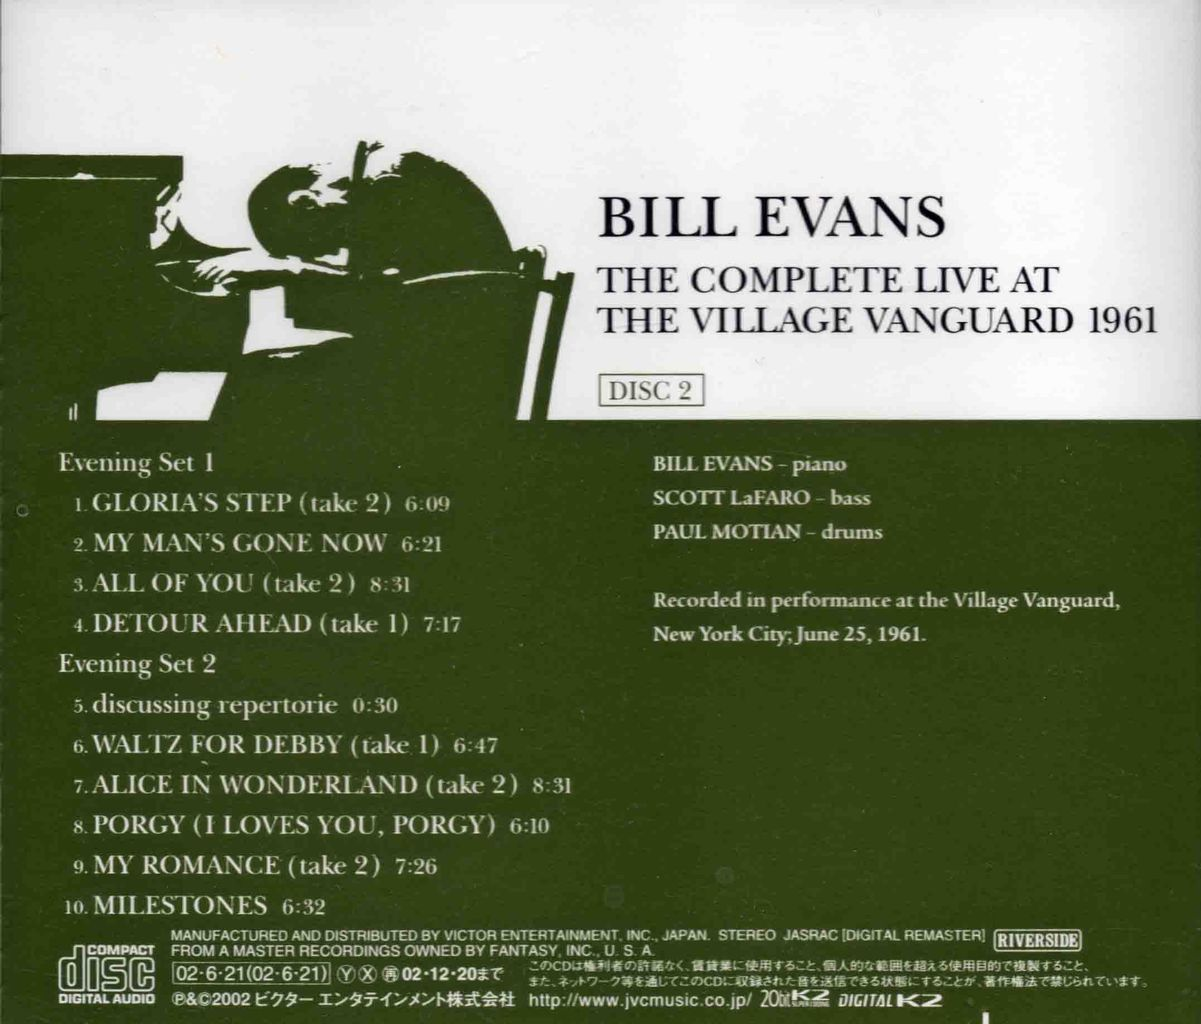 THE COMPLETE LIVE AT THE VILLAGE VANGUARD 1961-6